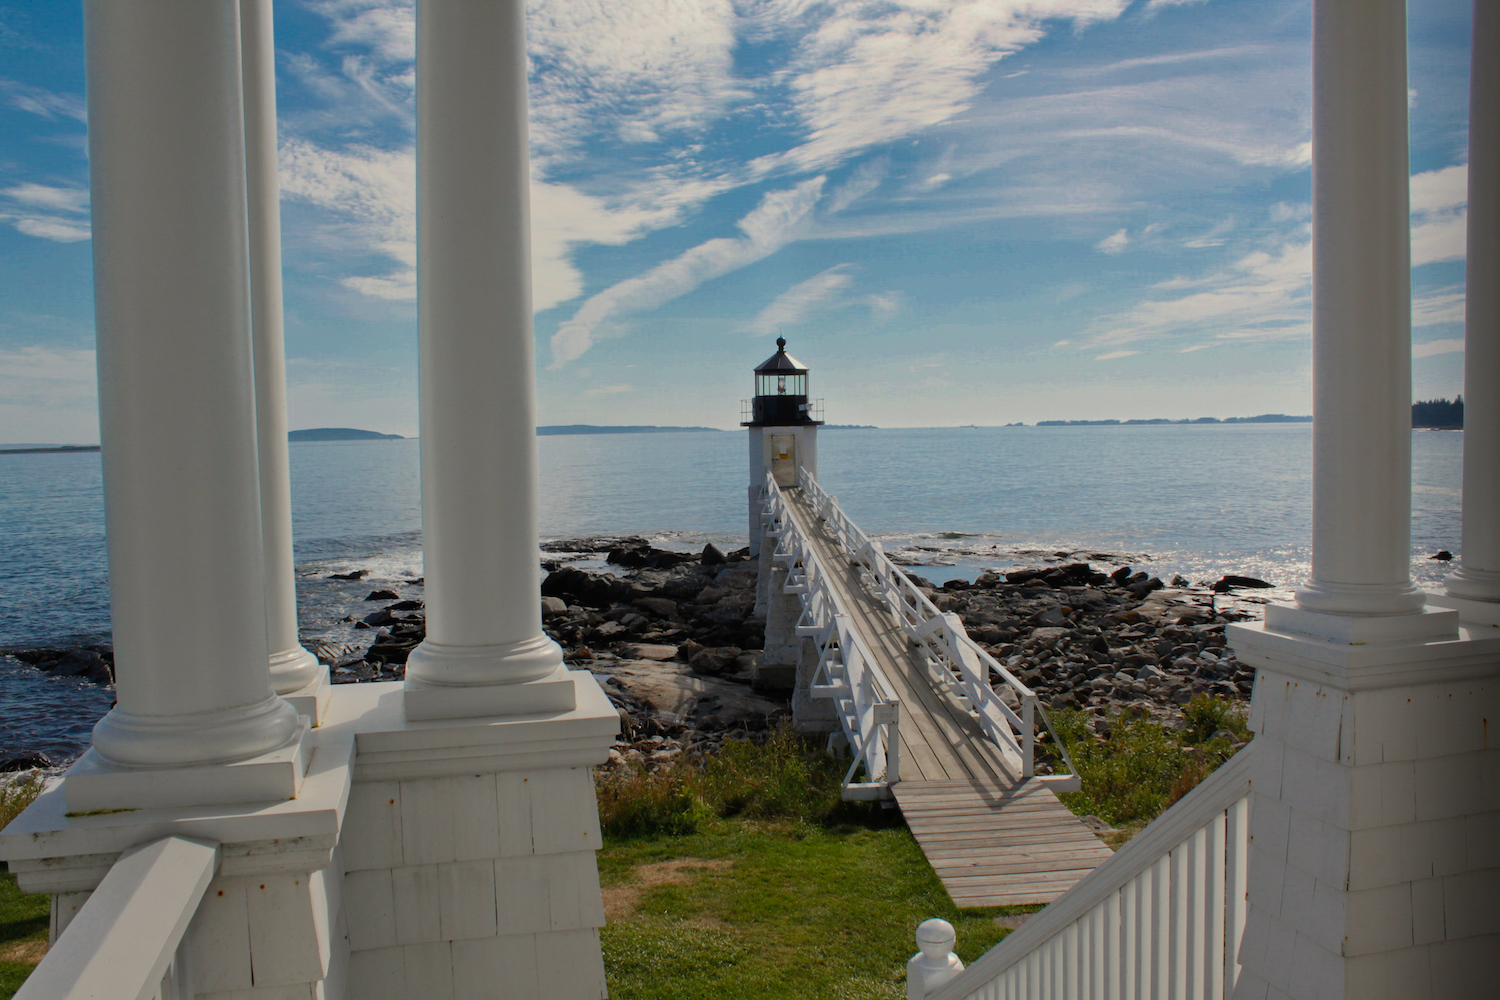 Photo Tour: Lighthouses & Lobsters, A Maine Adventure